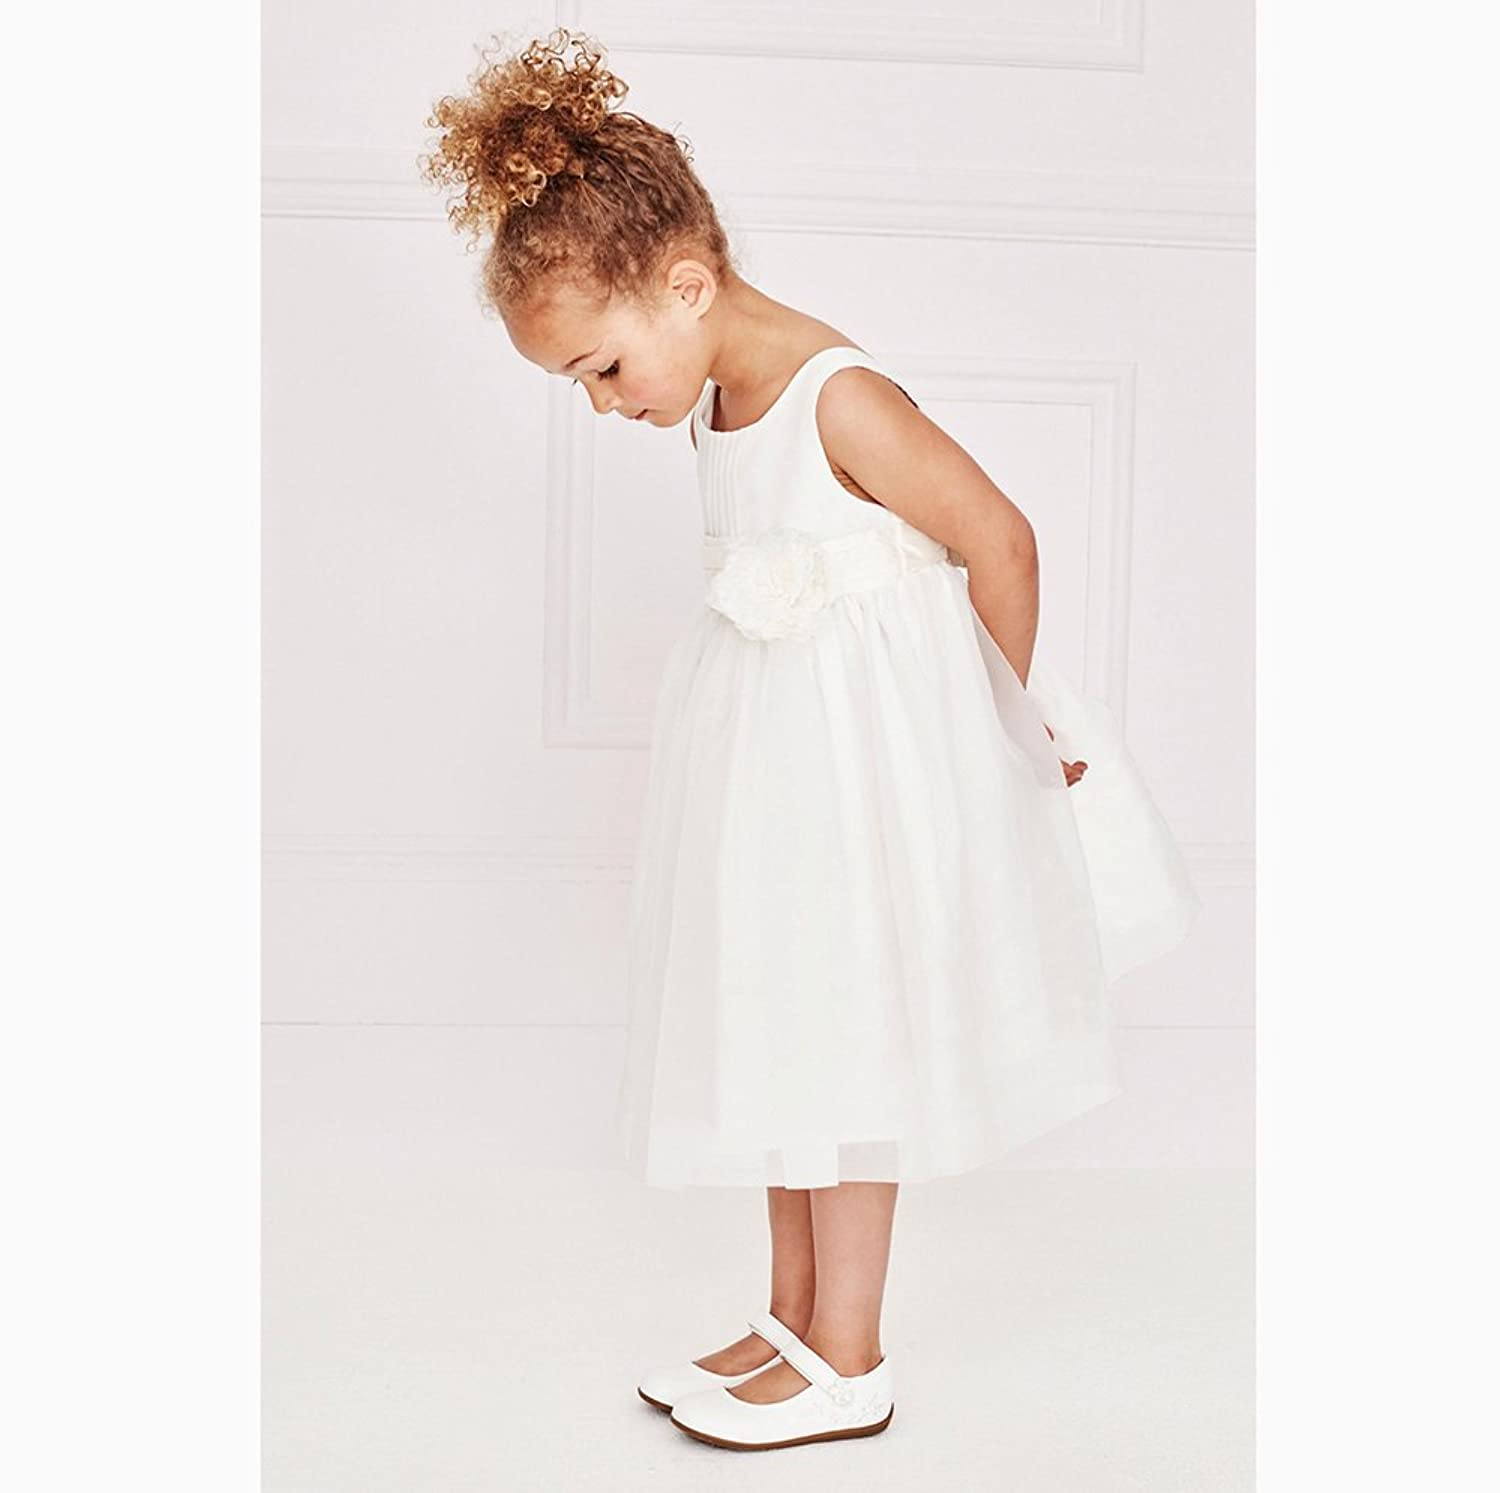 ad7a9aea5642 LvYinLi US Girls Clothes Girls White Flower Dresses